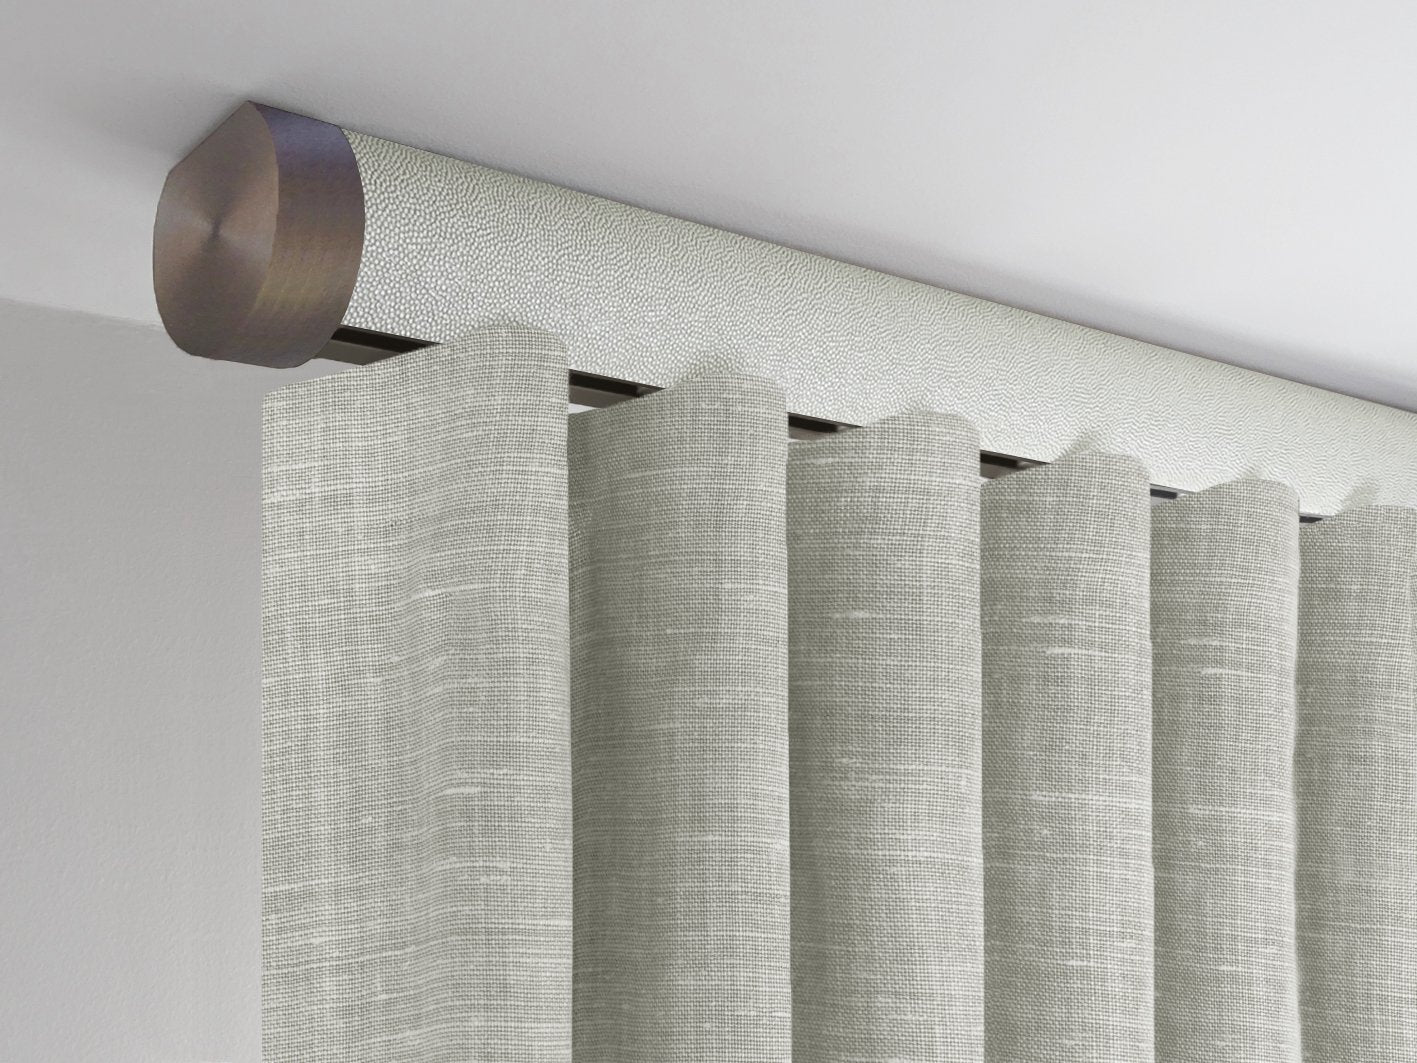 Tracked White Curtain Pole Ceiling Mounted Flush Fit Specialist Pole Walcot House